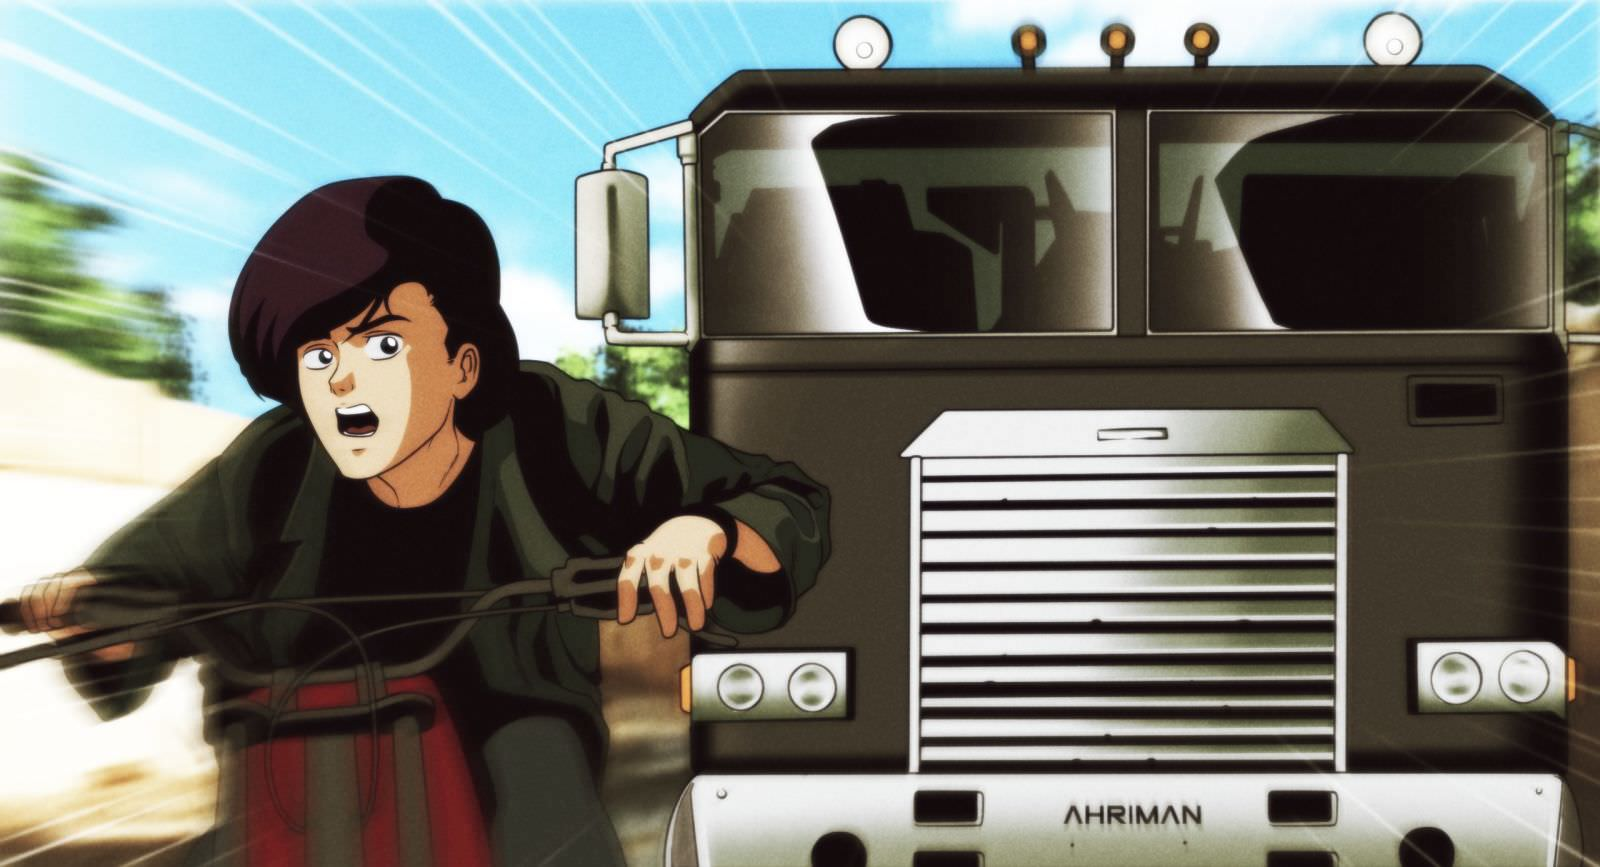 Ahriman T2 4 - Must-See Art: Ahriman Turns Classic Flicks Into Anime!